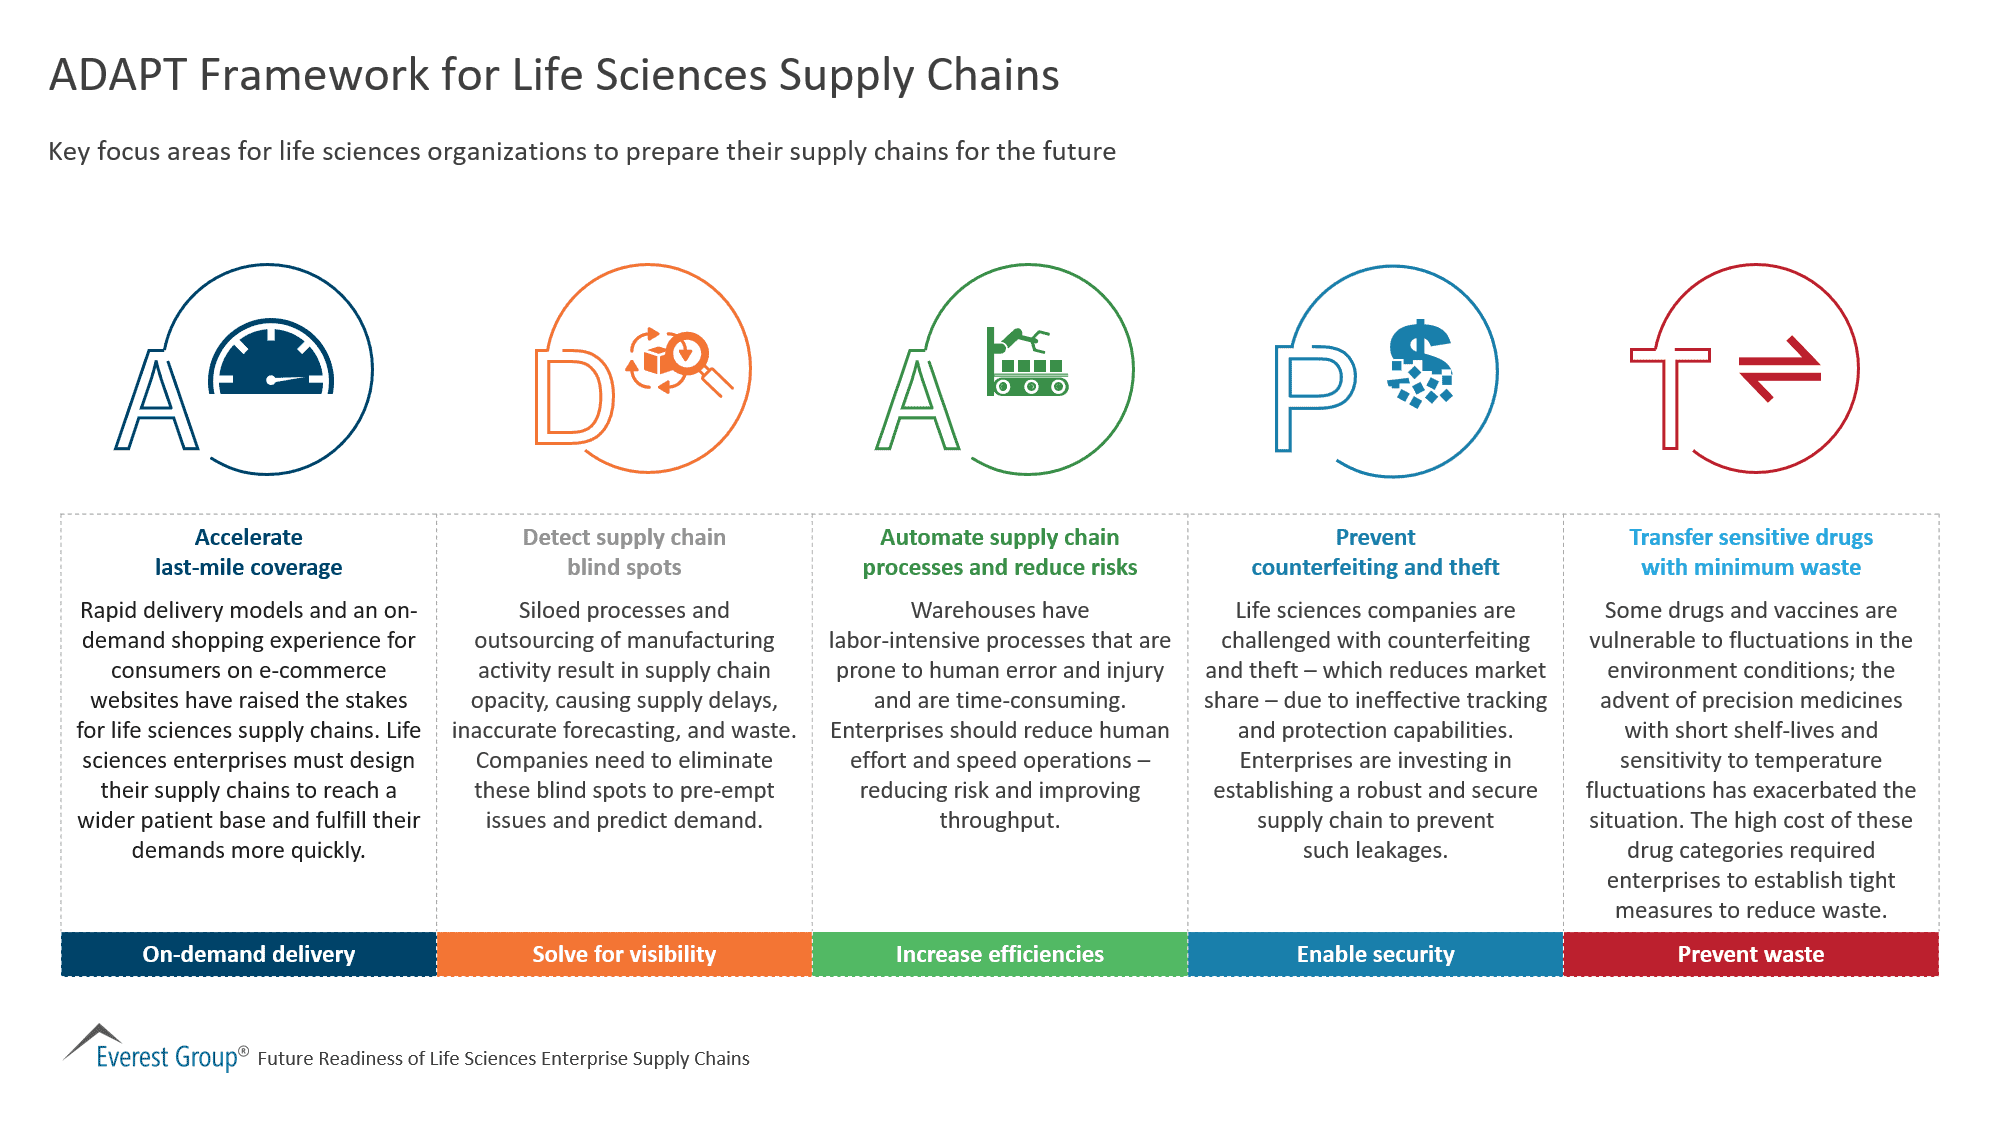 ADAPT Framework for Life Sciences Supply Chains